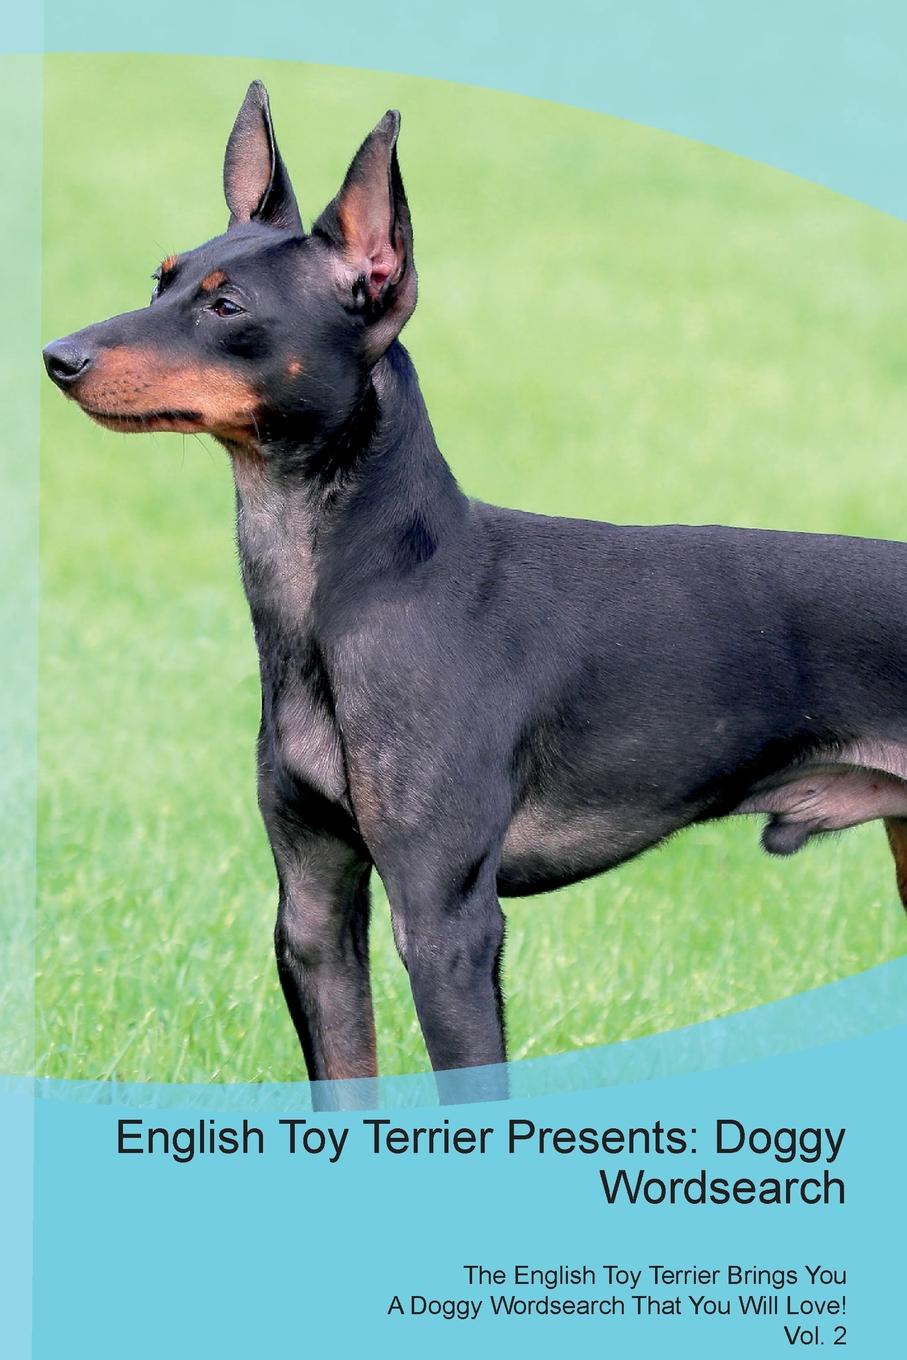 Doggy Puzzles English Toy Terrier Presents. Wordsearch The Brings You A That Will Love! Vol. 2